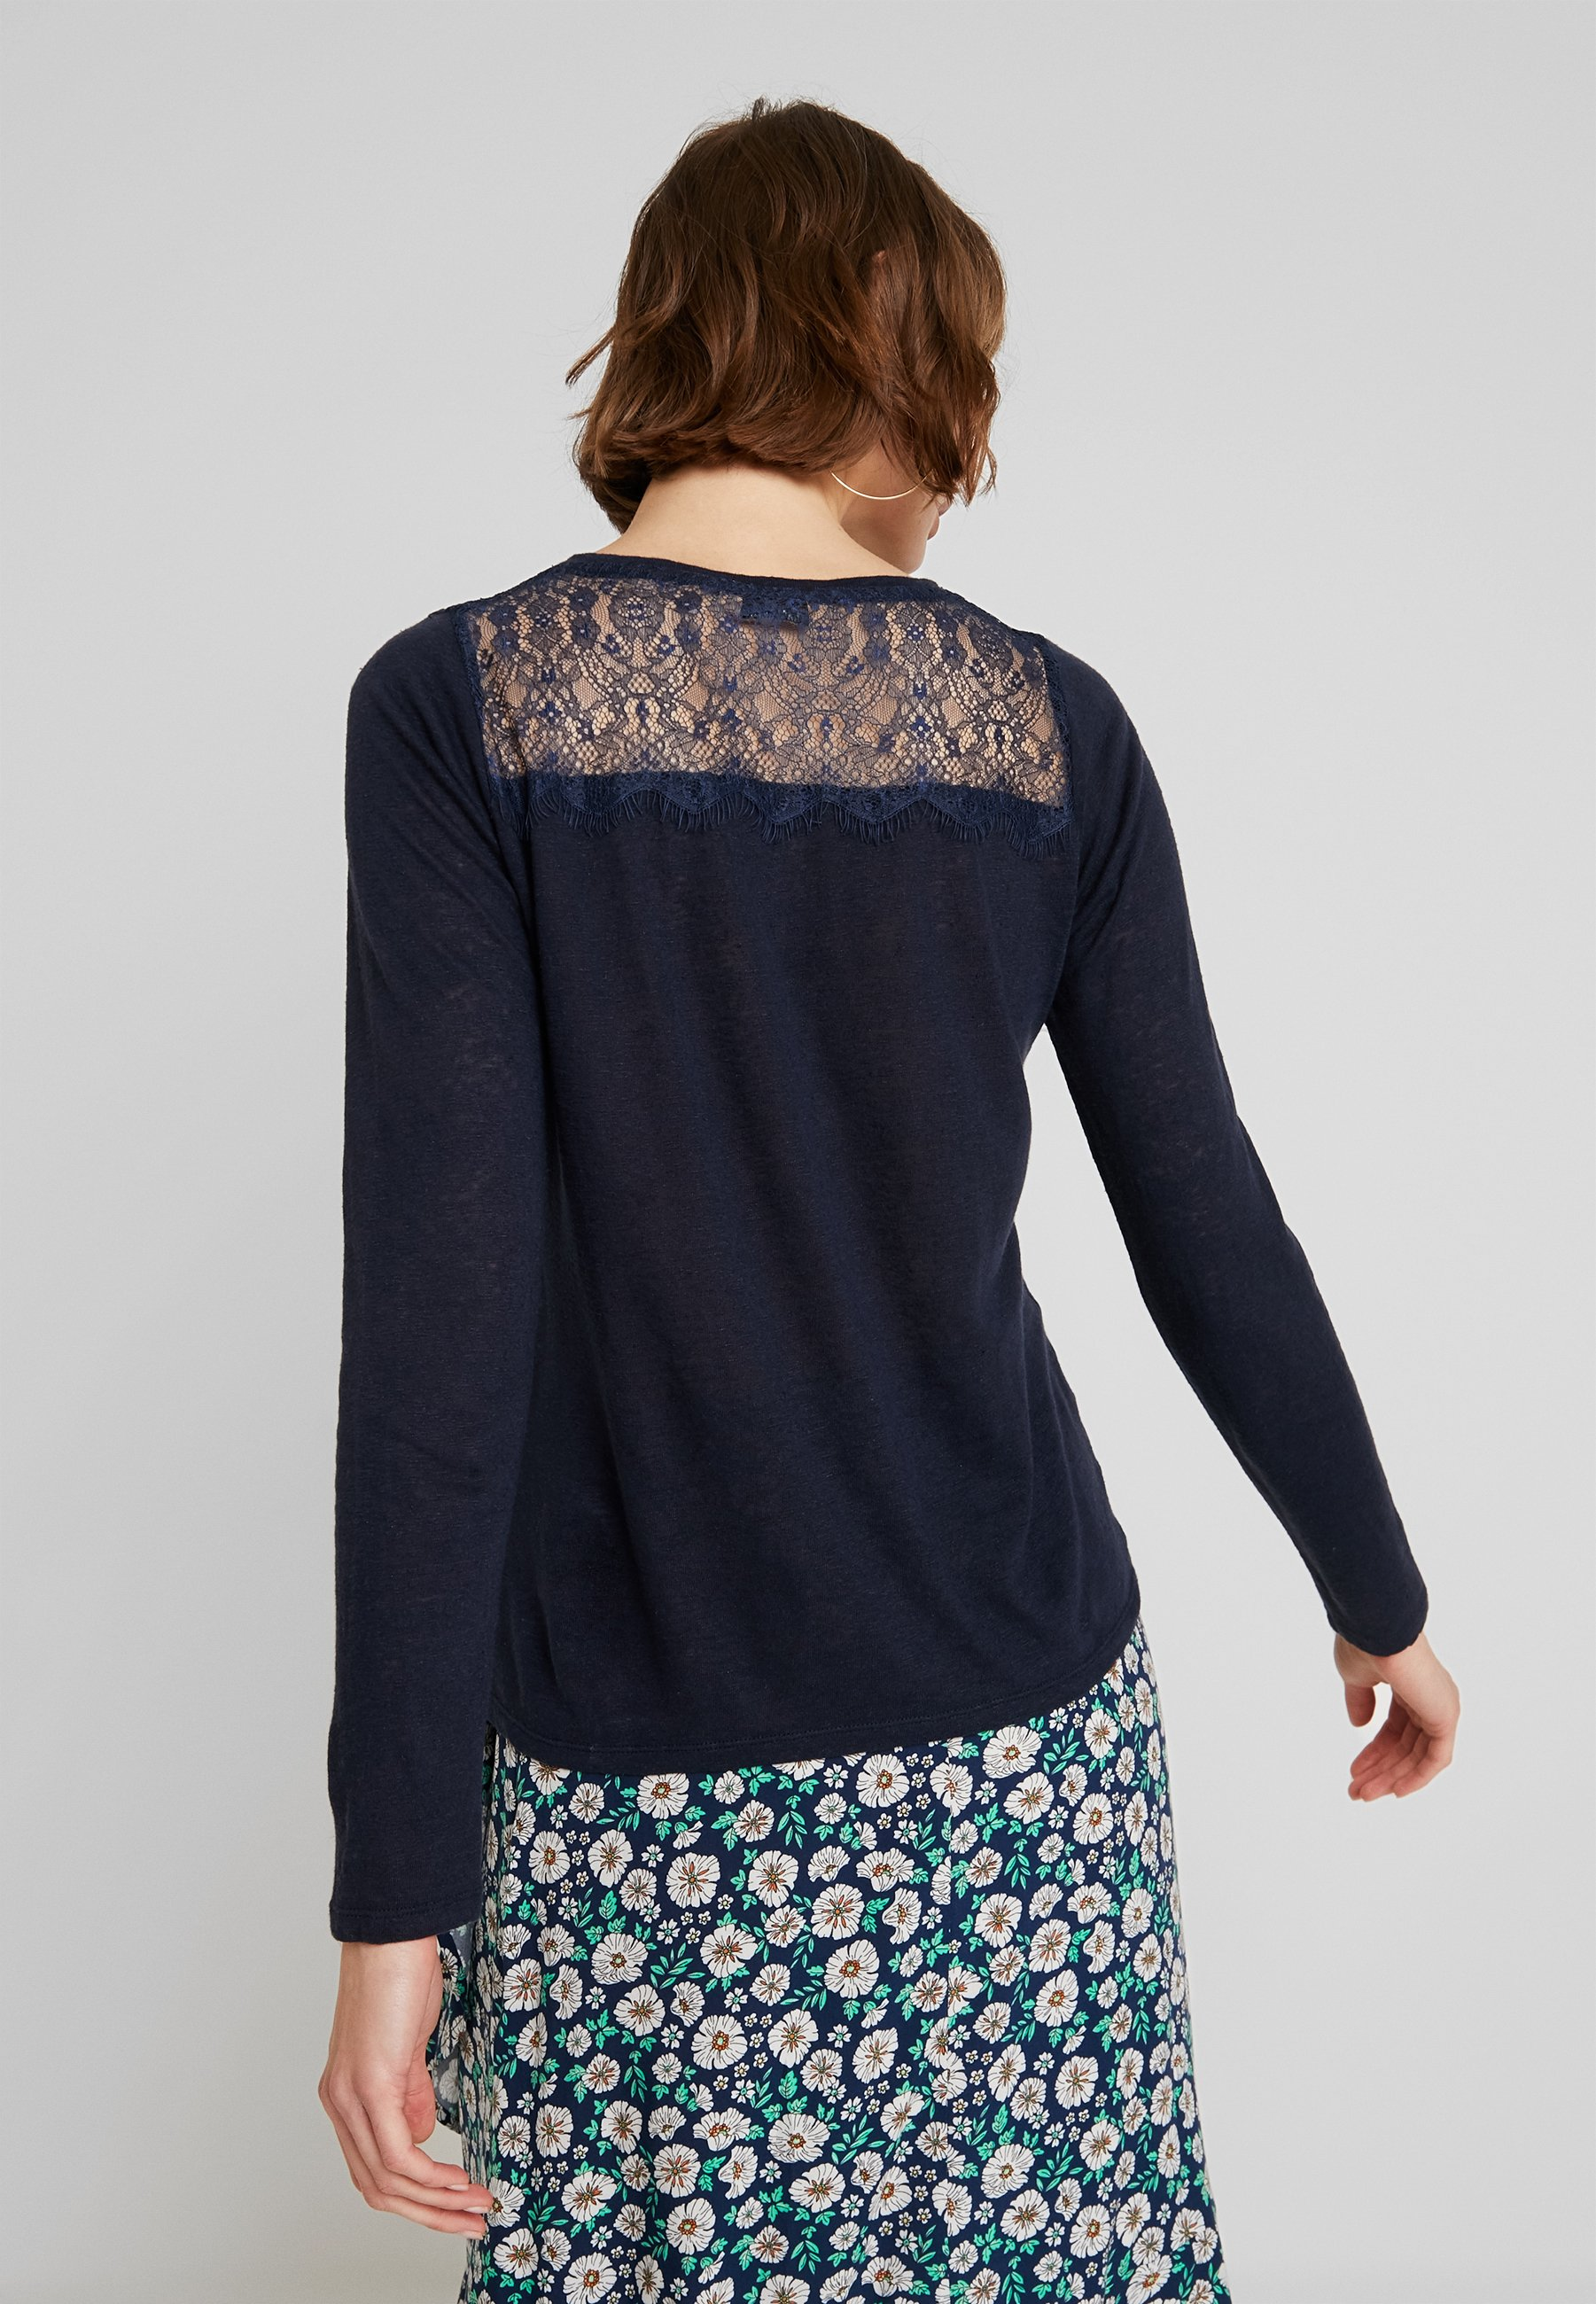 Manches Navy Rinsed Superdry GraphicT À shirt Longues drxeCBoW